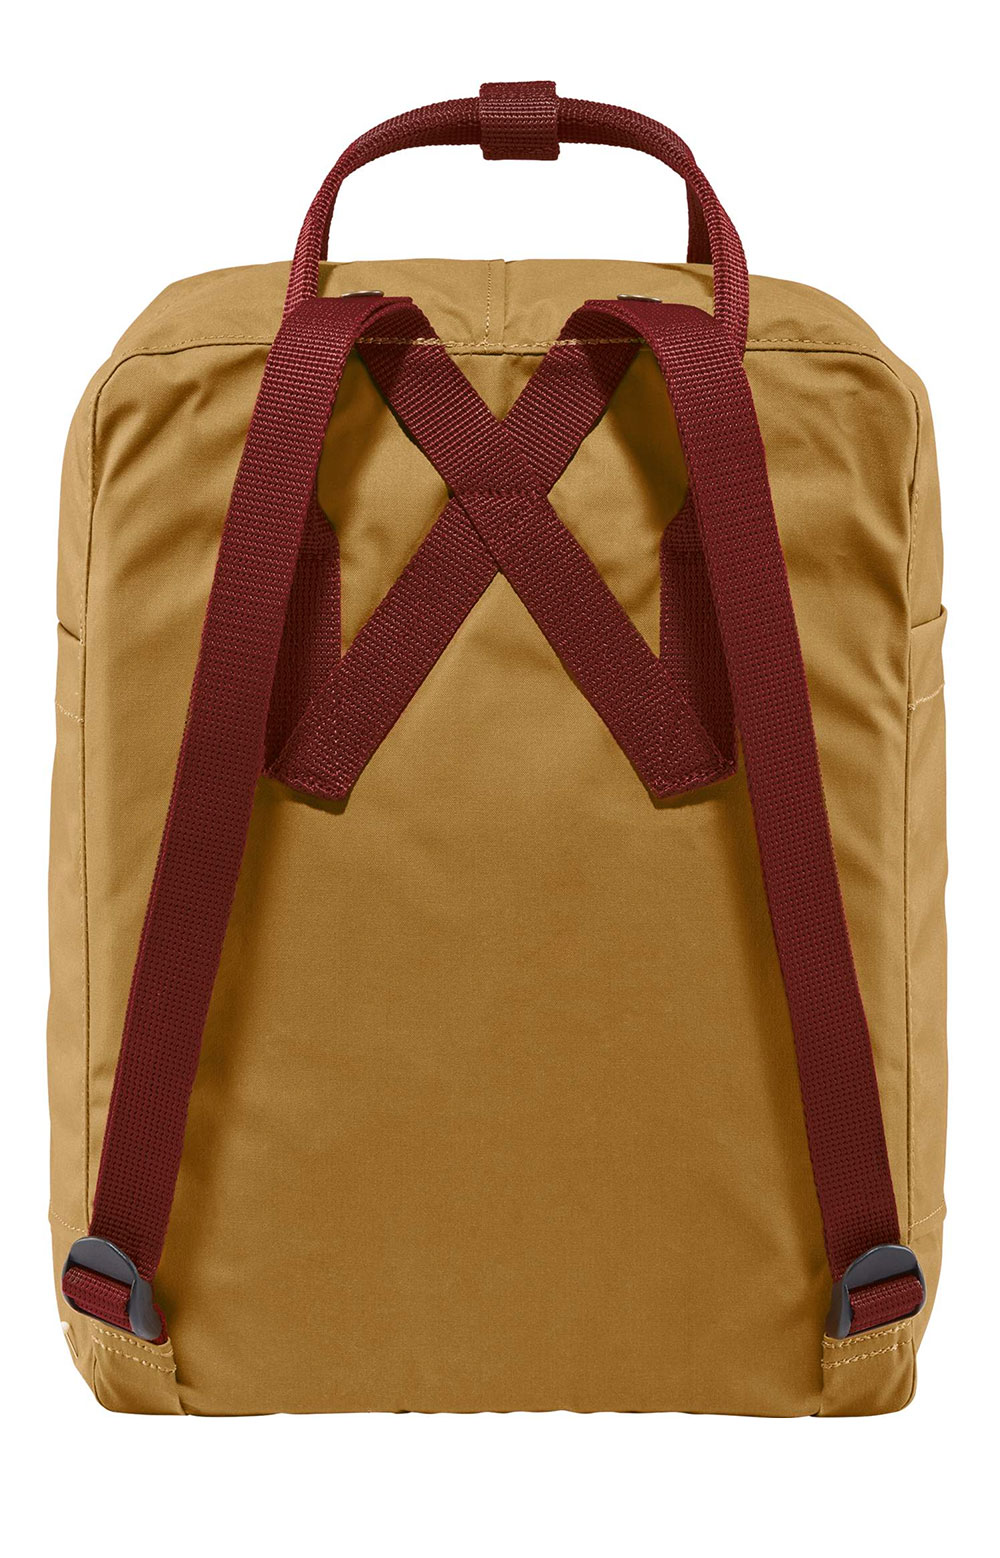 Kanken Backpack - Acorn/Ox Red 3